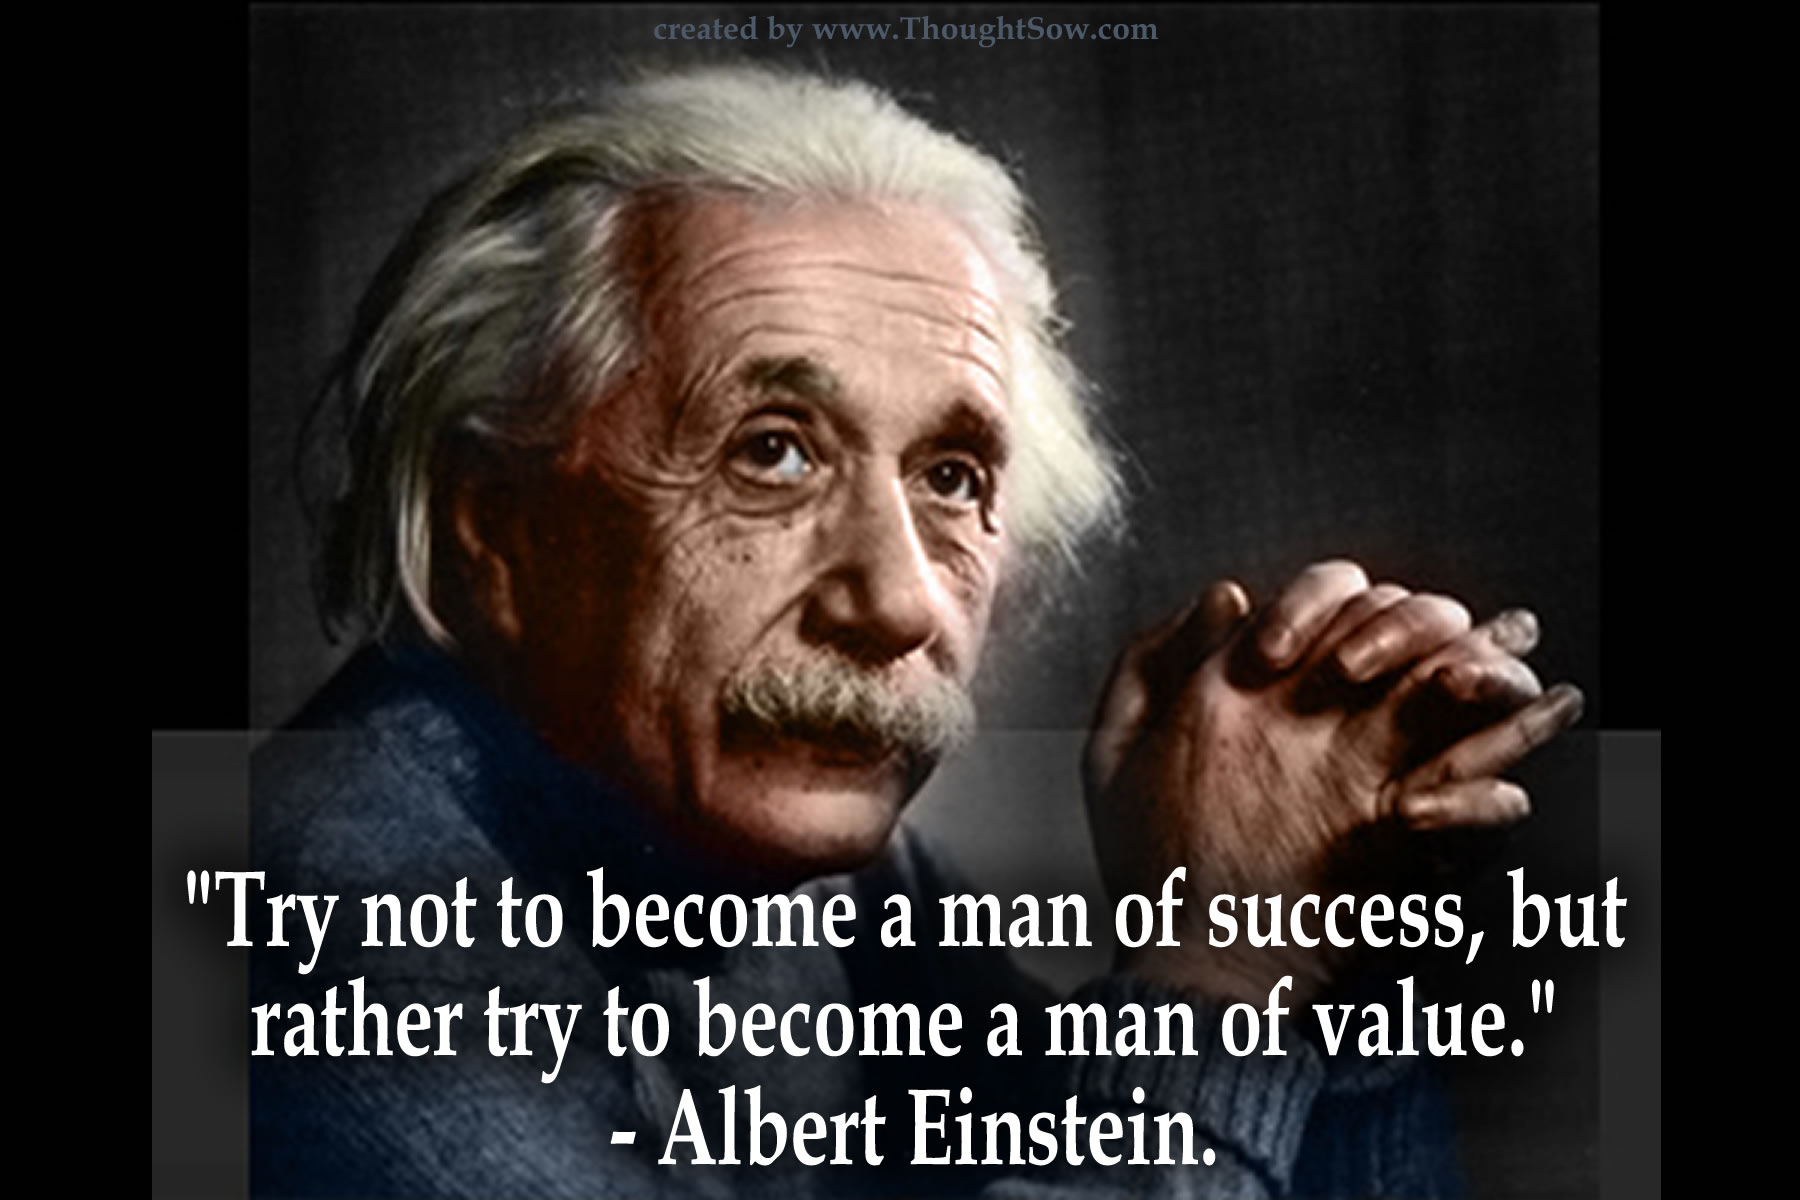 albert-einstein-success-value-large2.jpg - 184.29 Kb